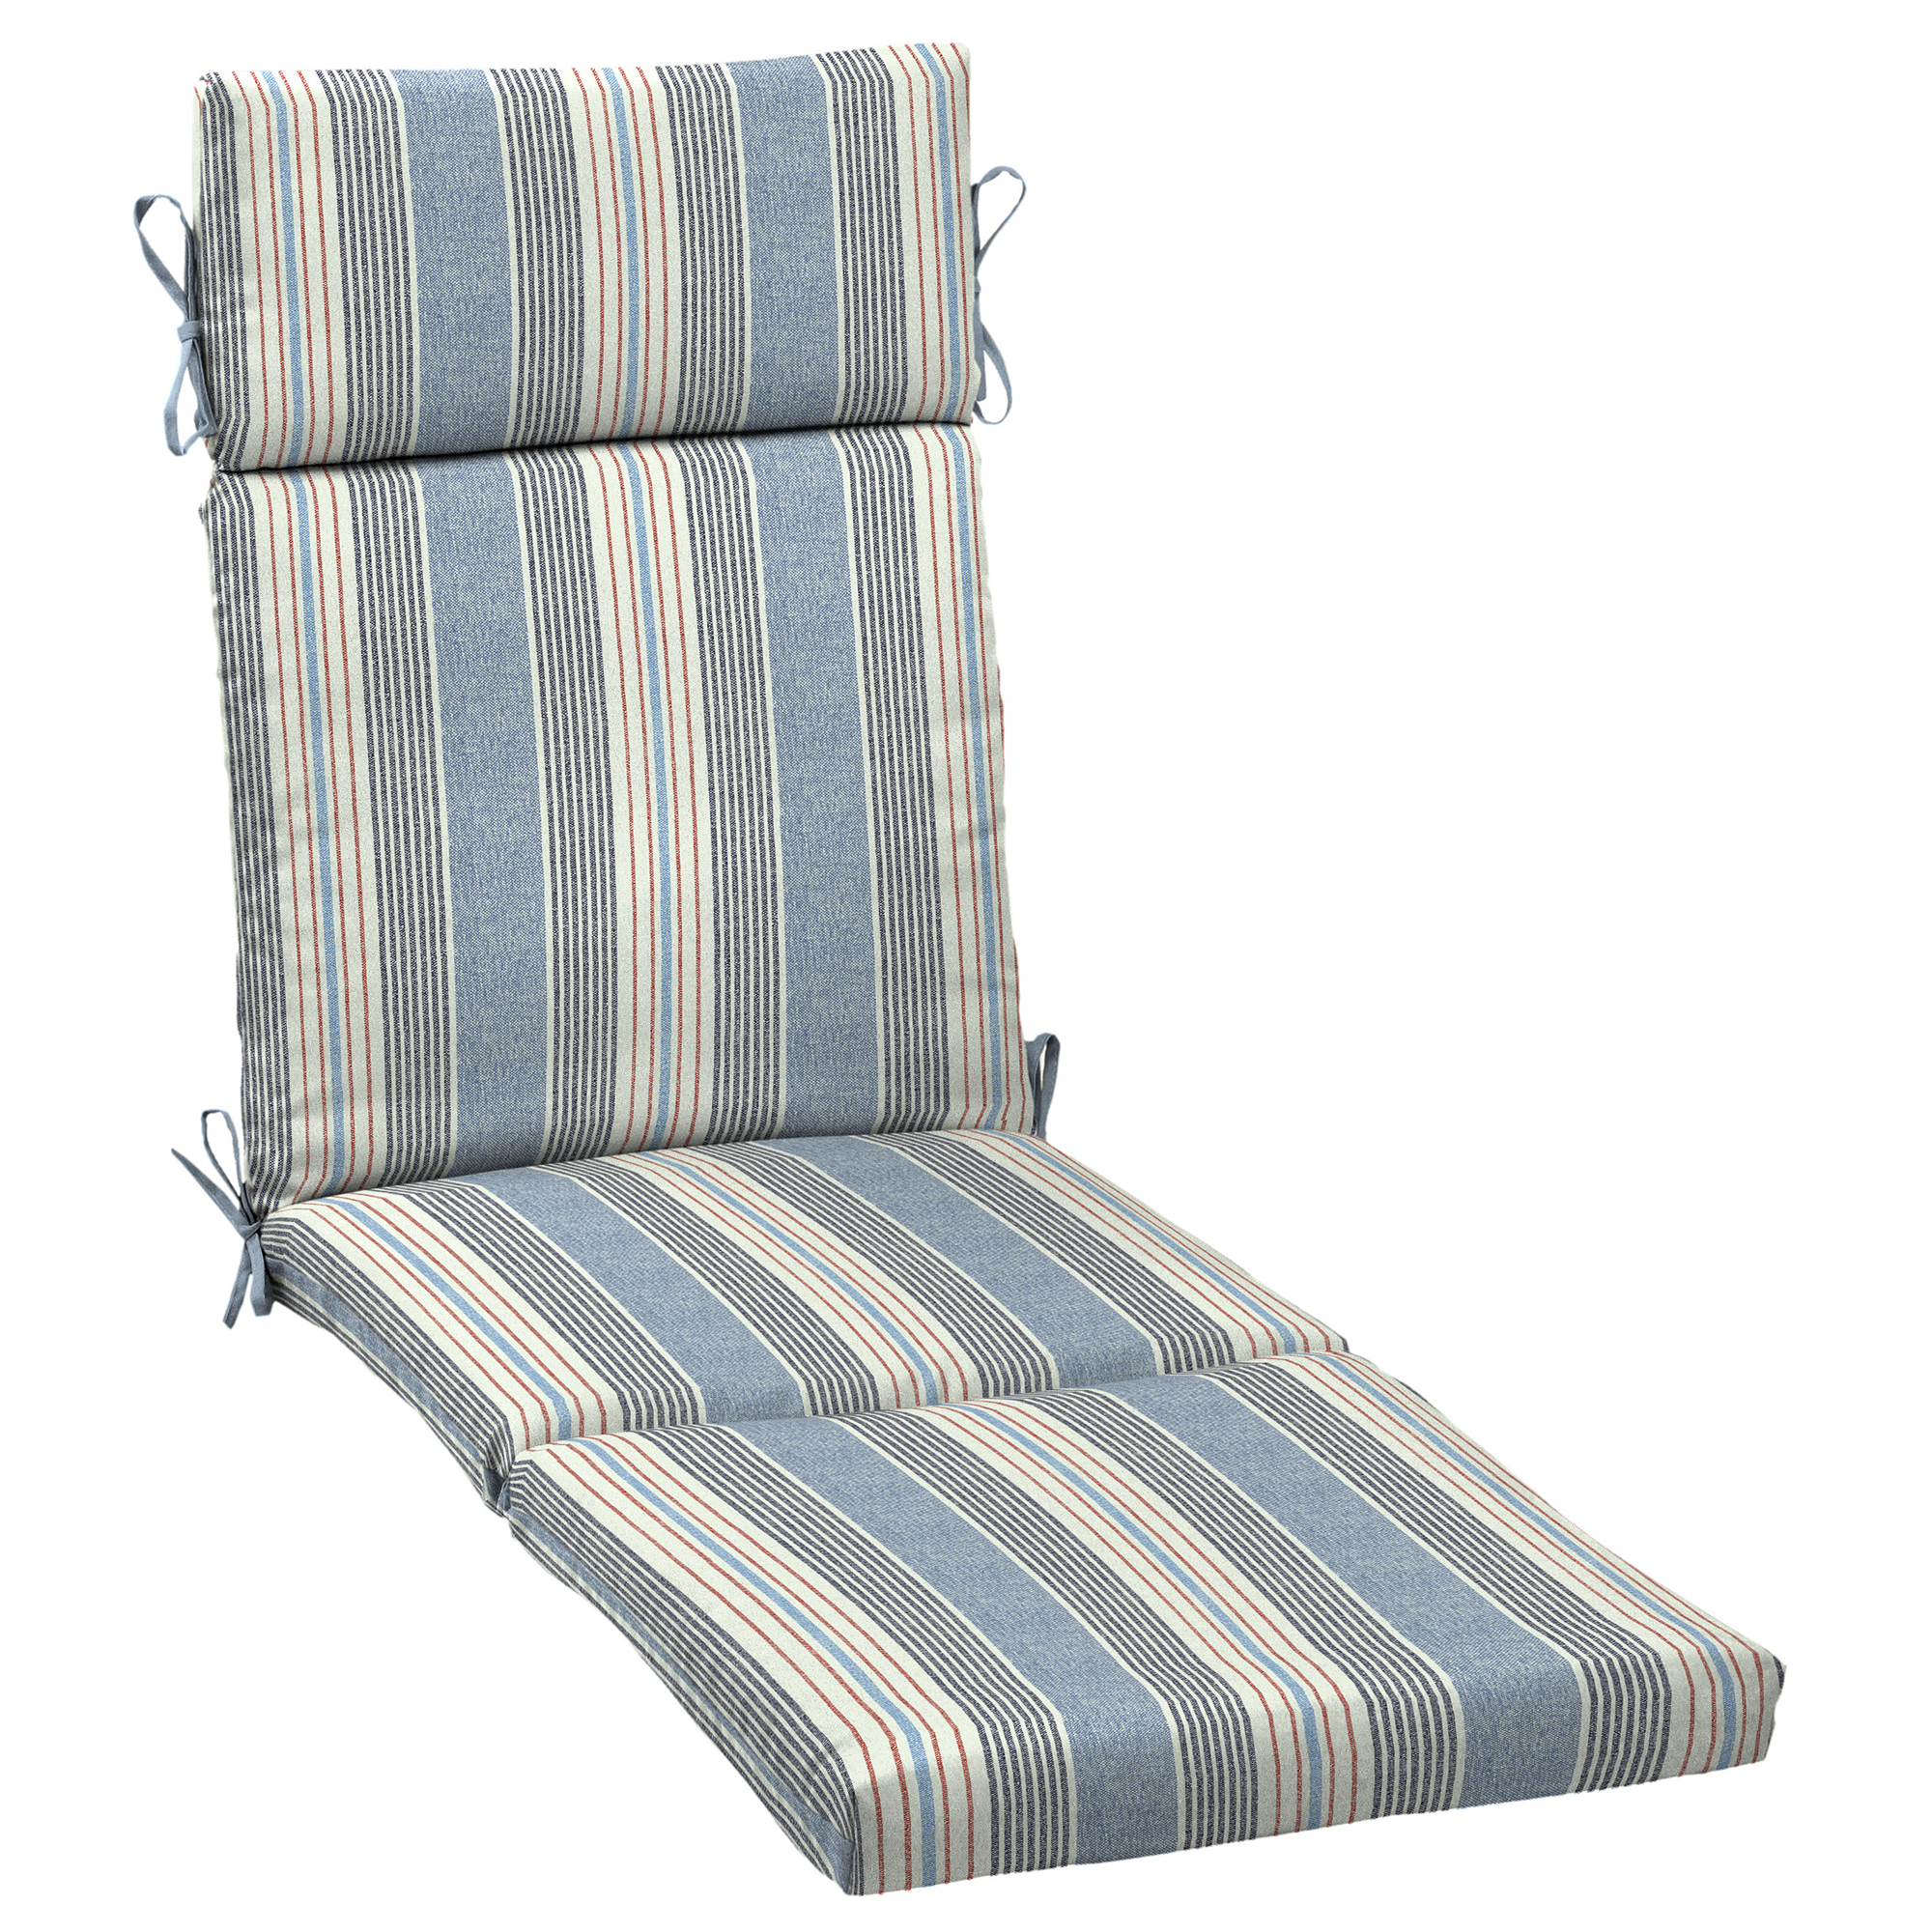 Better Homes & Gardens Hickory Stripe 72x 21 in. Outdoor Chaise Lounge Cushion with EnviroGuard